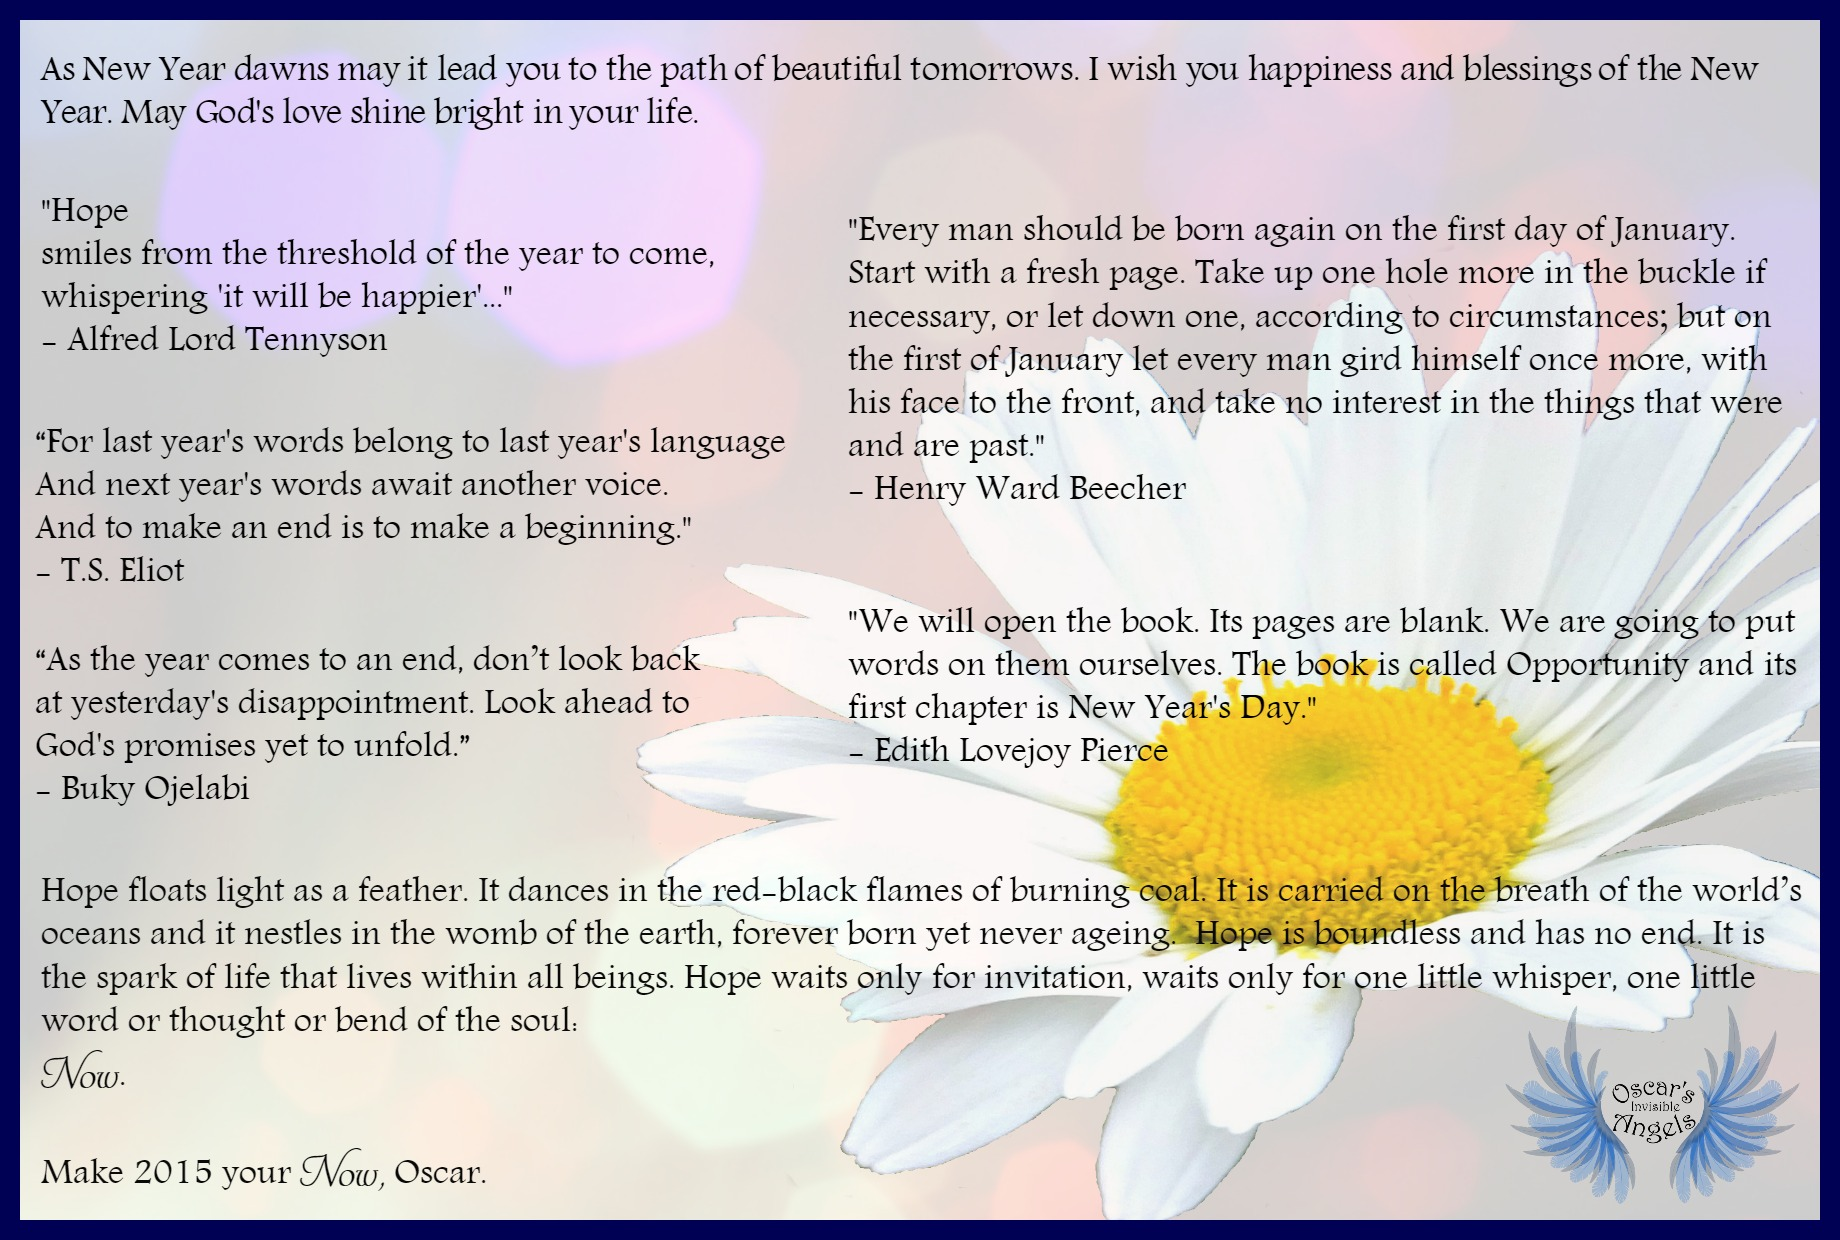 Blessed New Year | SUPPORT FOR OSCAR PISTORIUS